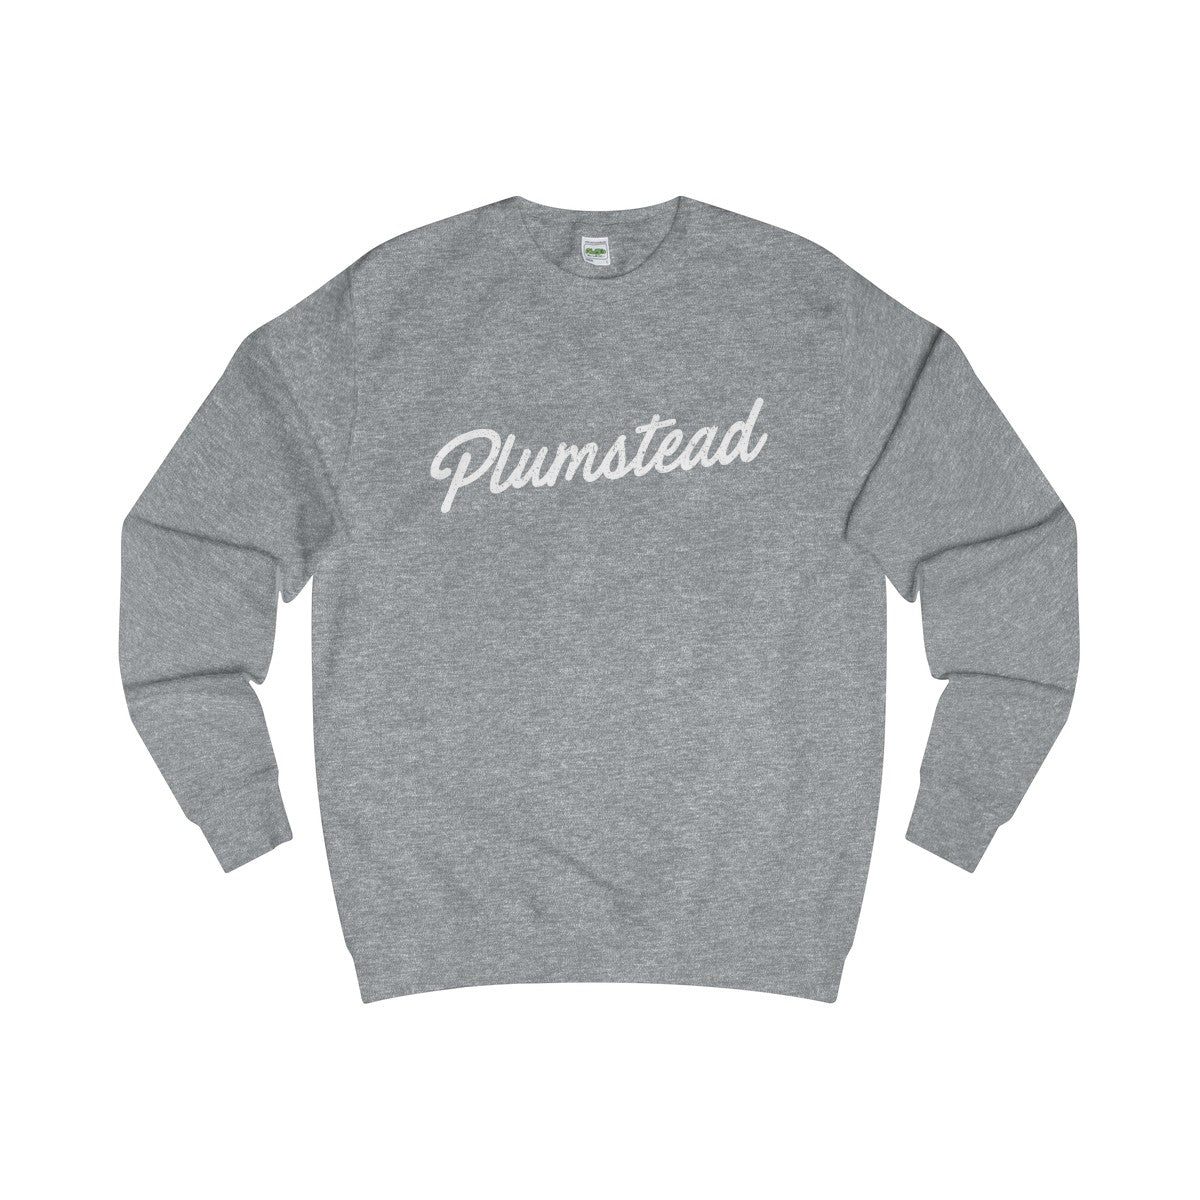 Plumstead Scripted Sweater